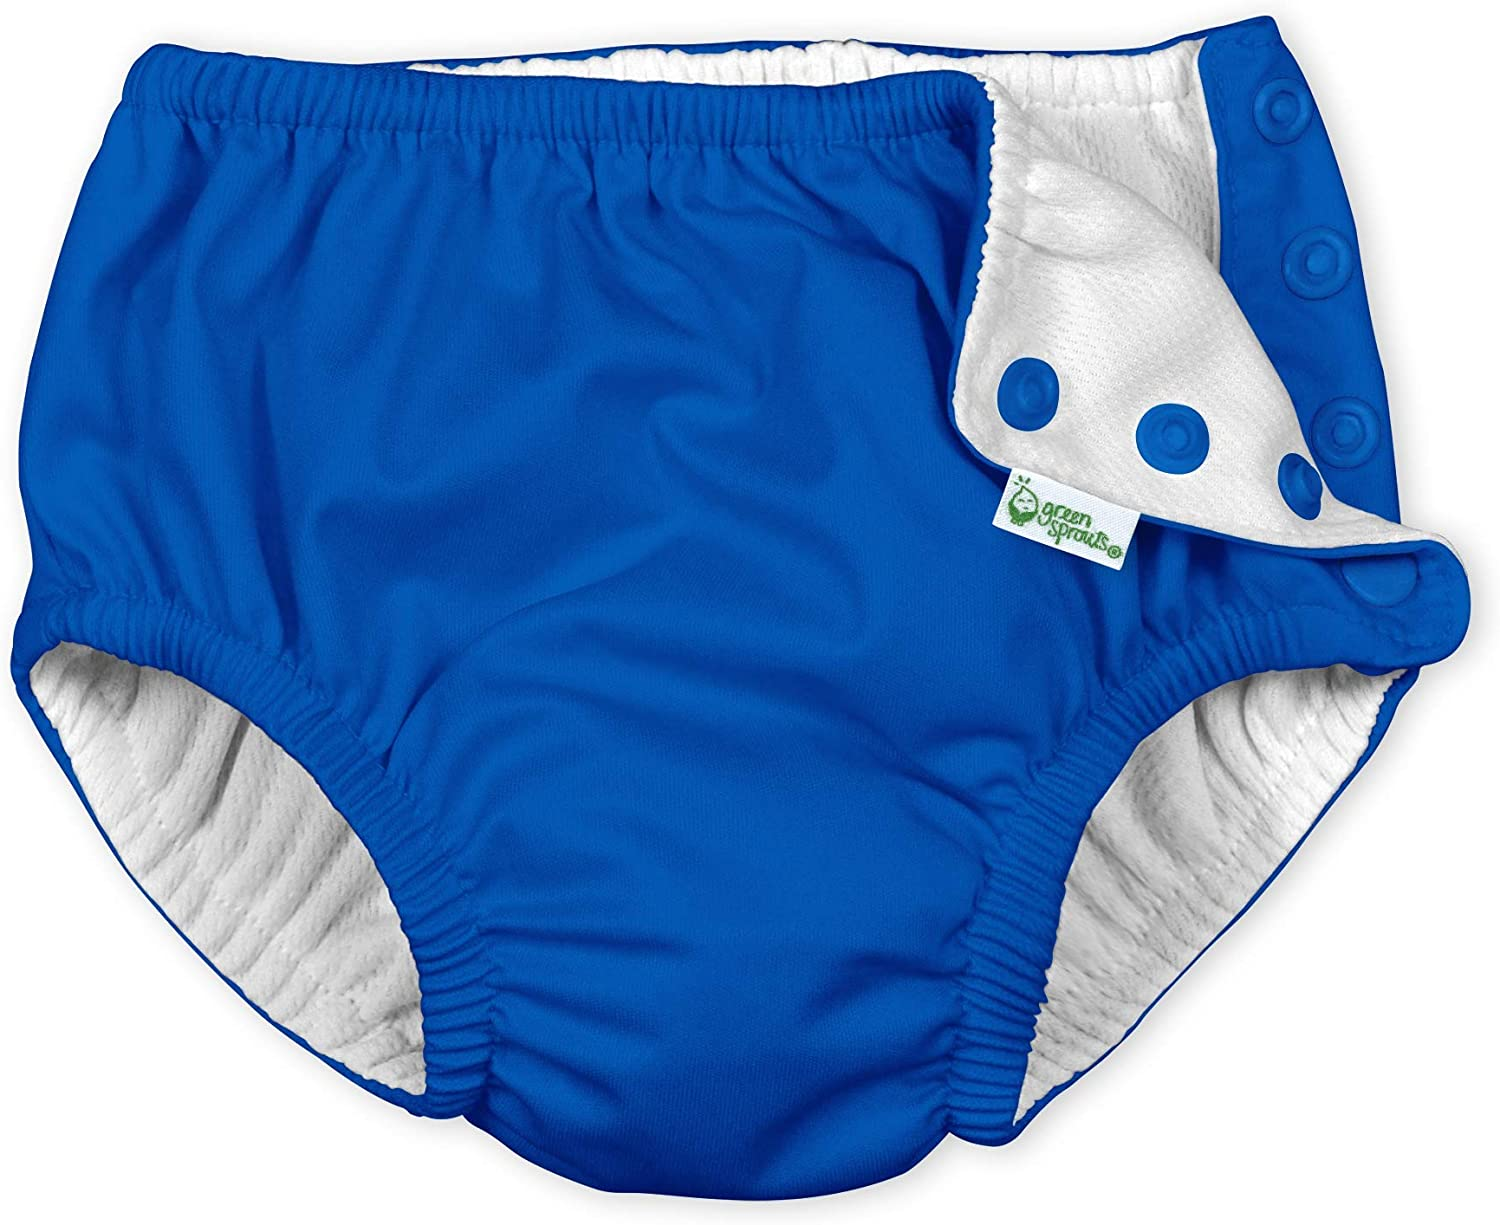 Snap Reusable Swim Diaper UPF 50+ protection No other diaper necessary i play